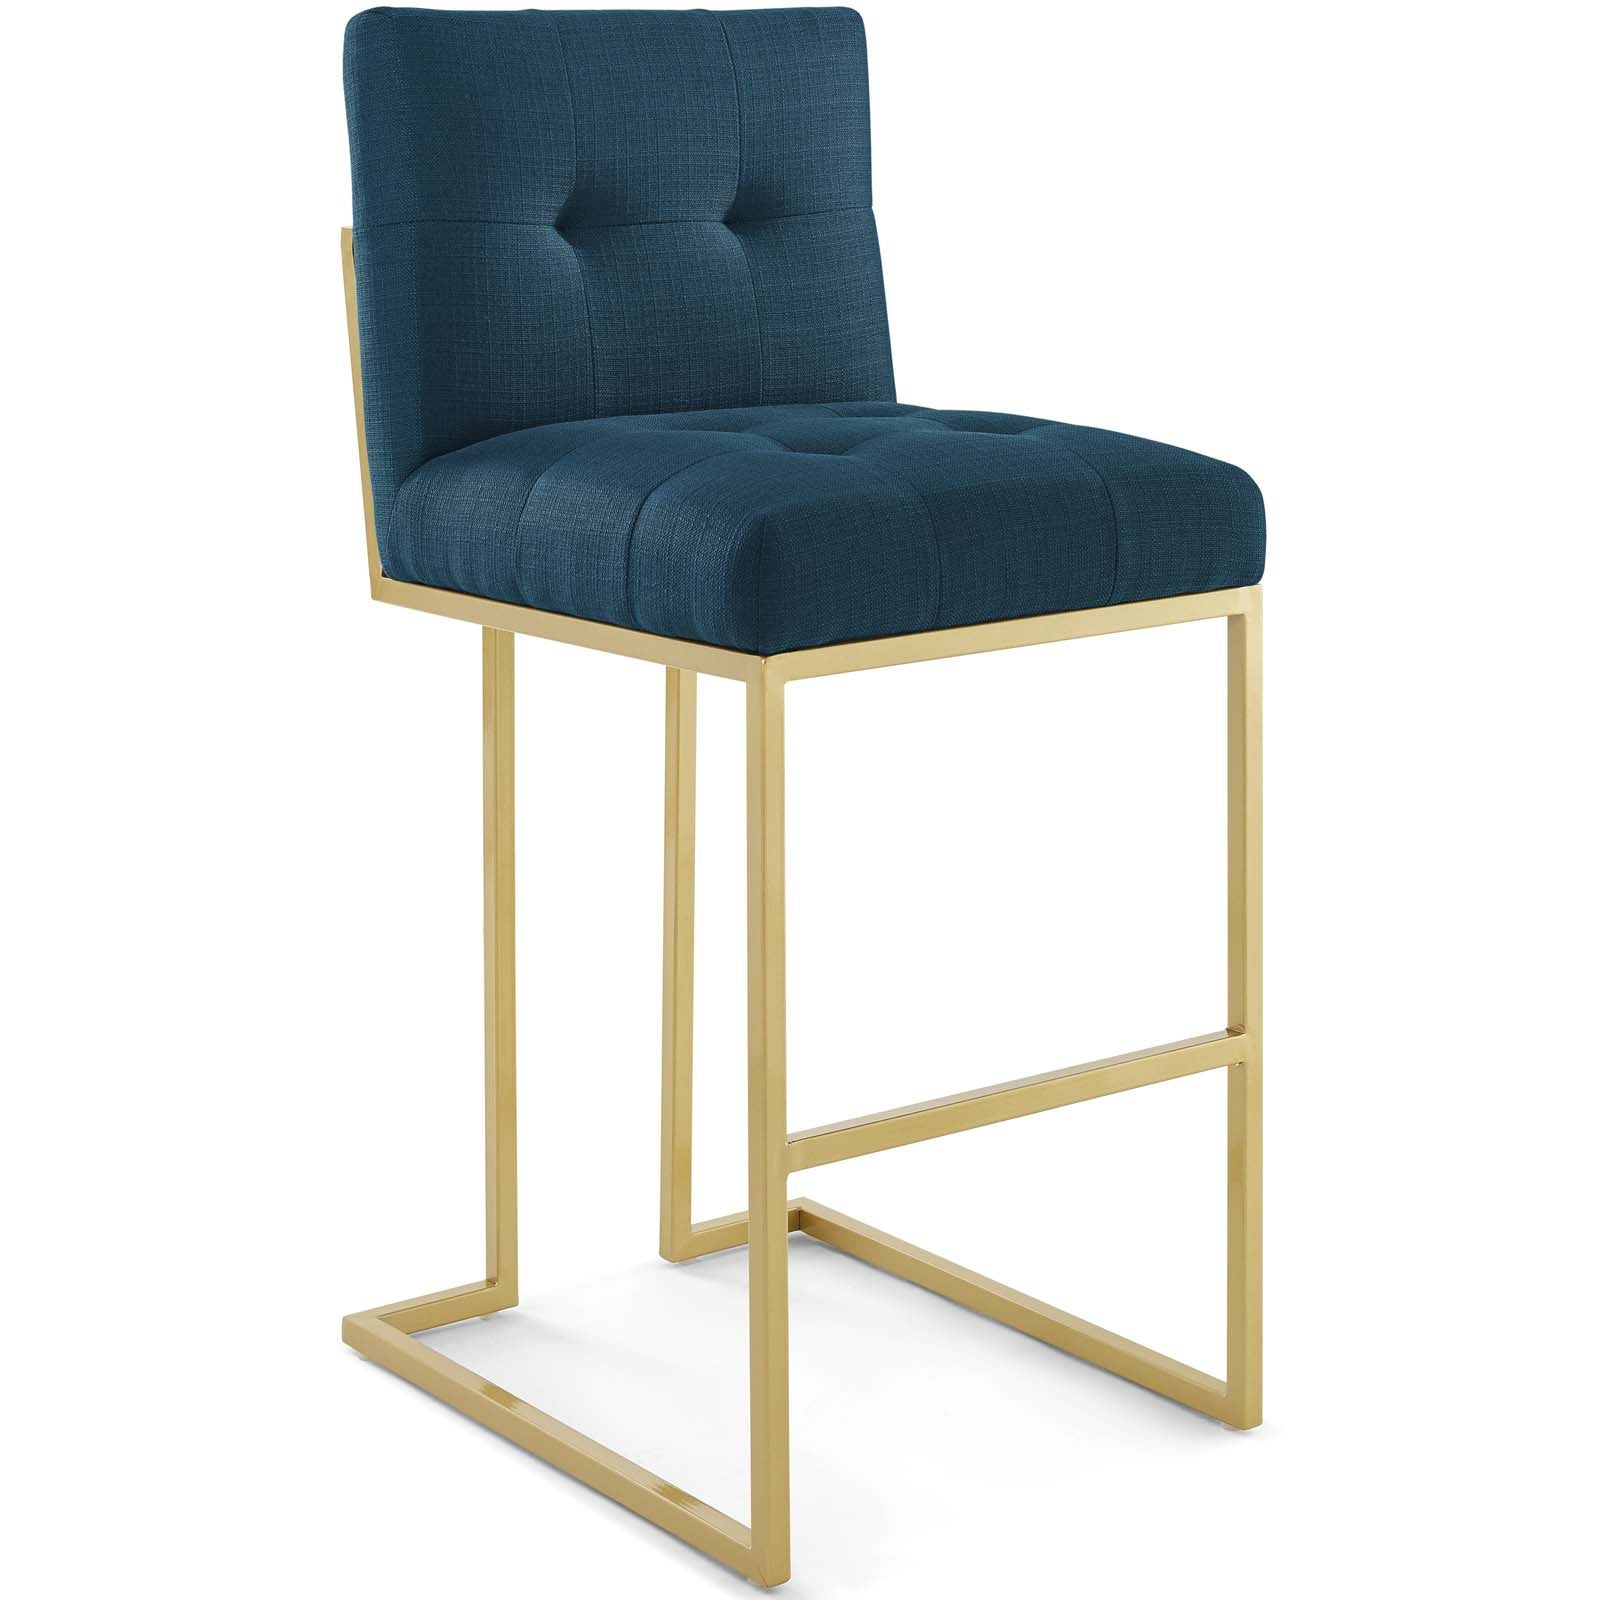 Privy Gold Stainless Steel Upholstered Fabric Bar Stool